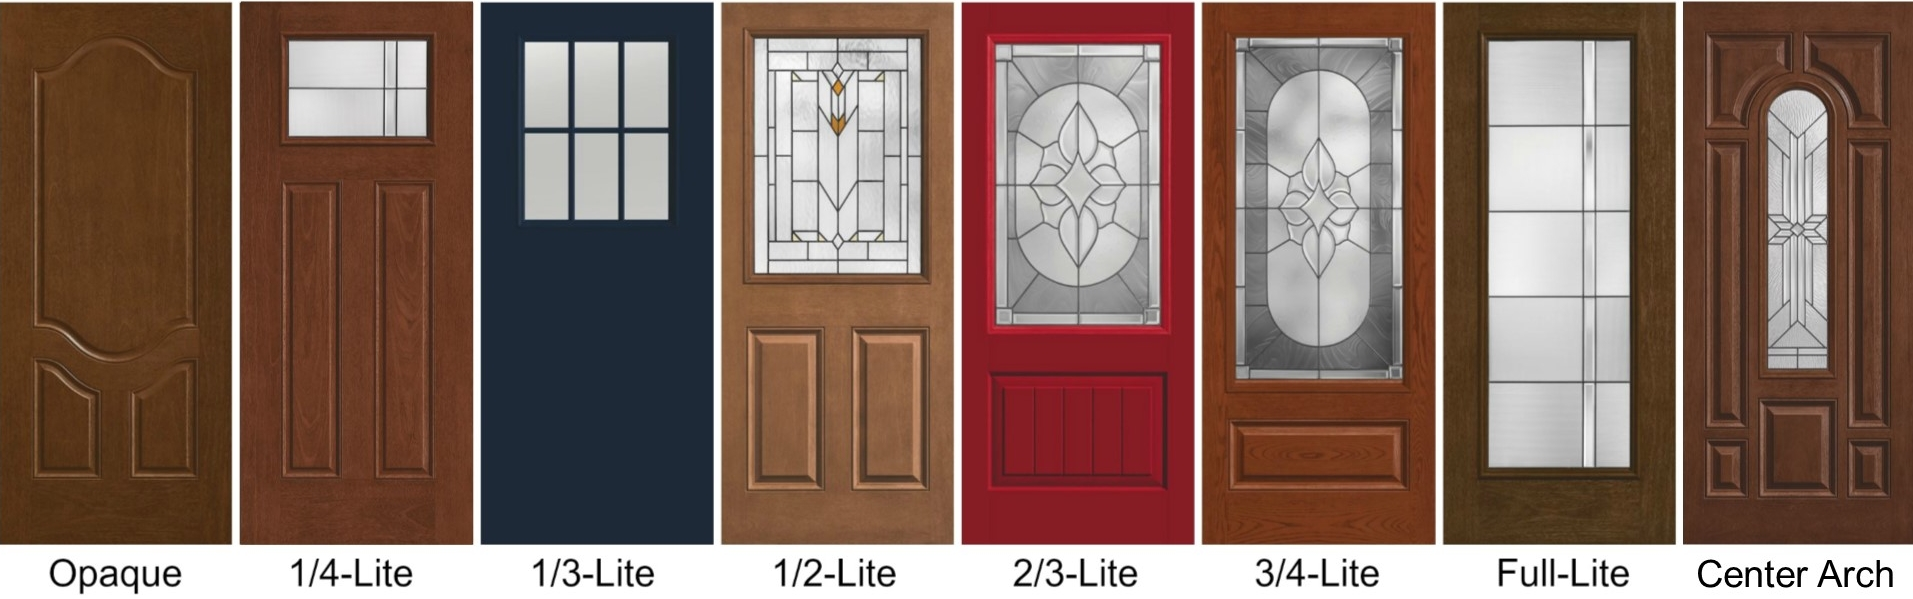 You can learn more about each of these different Therma-Tru door styles here:  Opaque ,  1/4-Lite ,  1/3-Lite ,  1/2-Lite ,  2/3-Lite ,  3/4-Lite ,  Full-Lite , and  Center Arch .